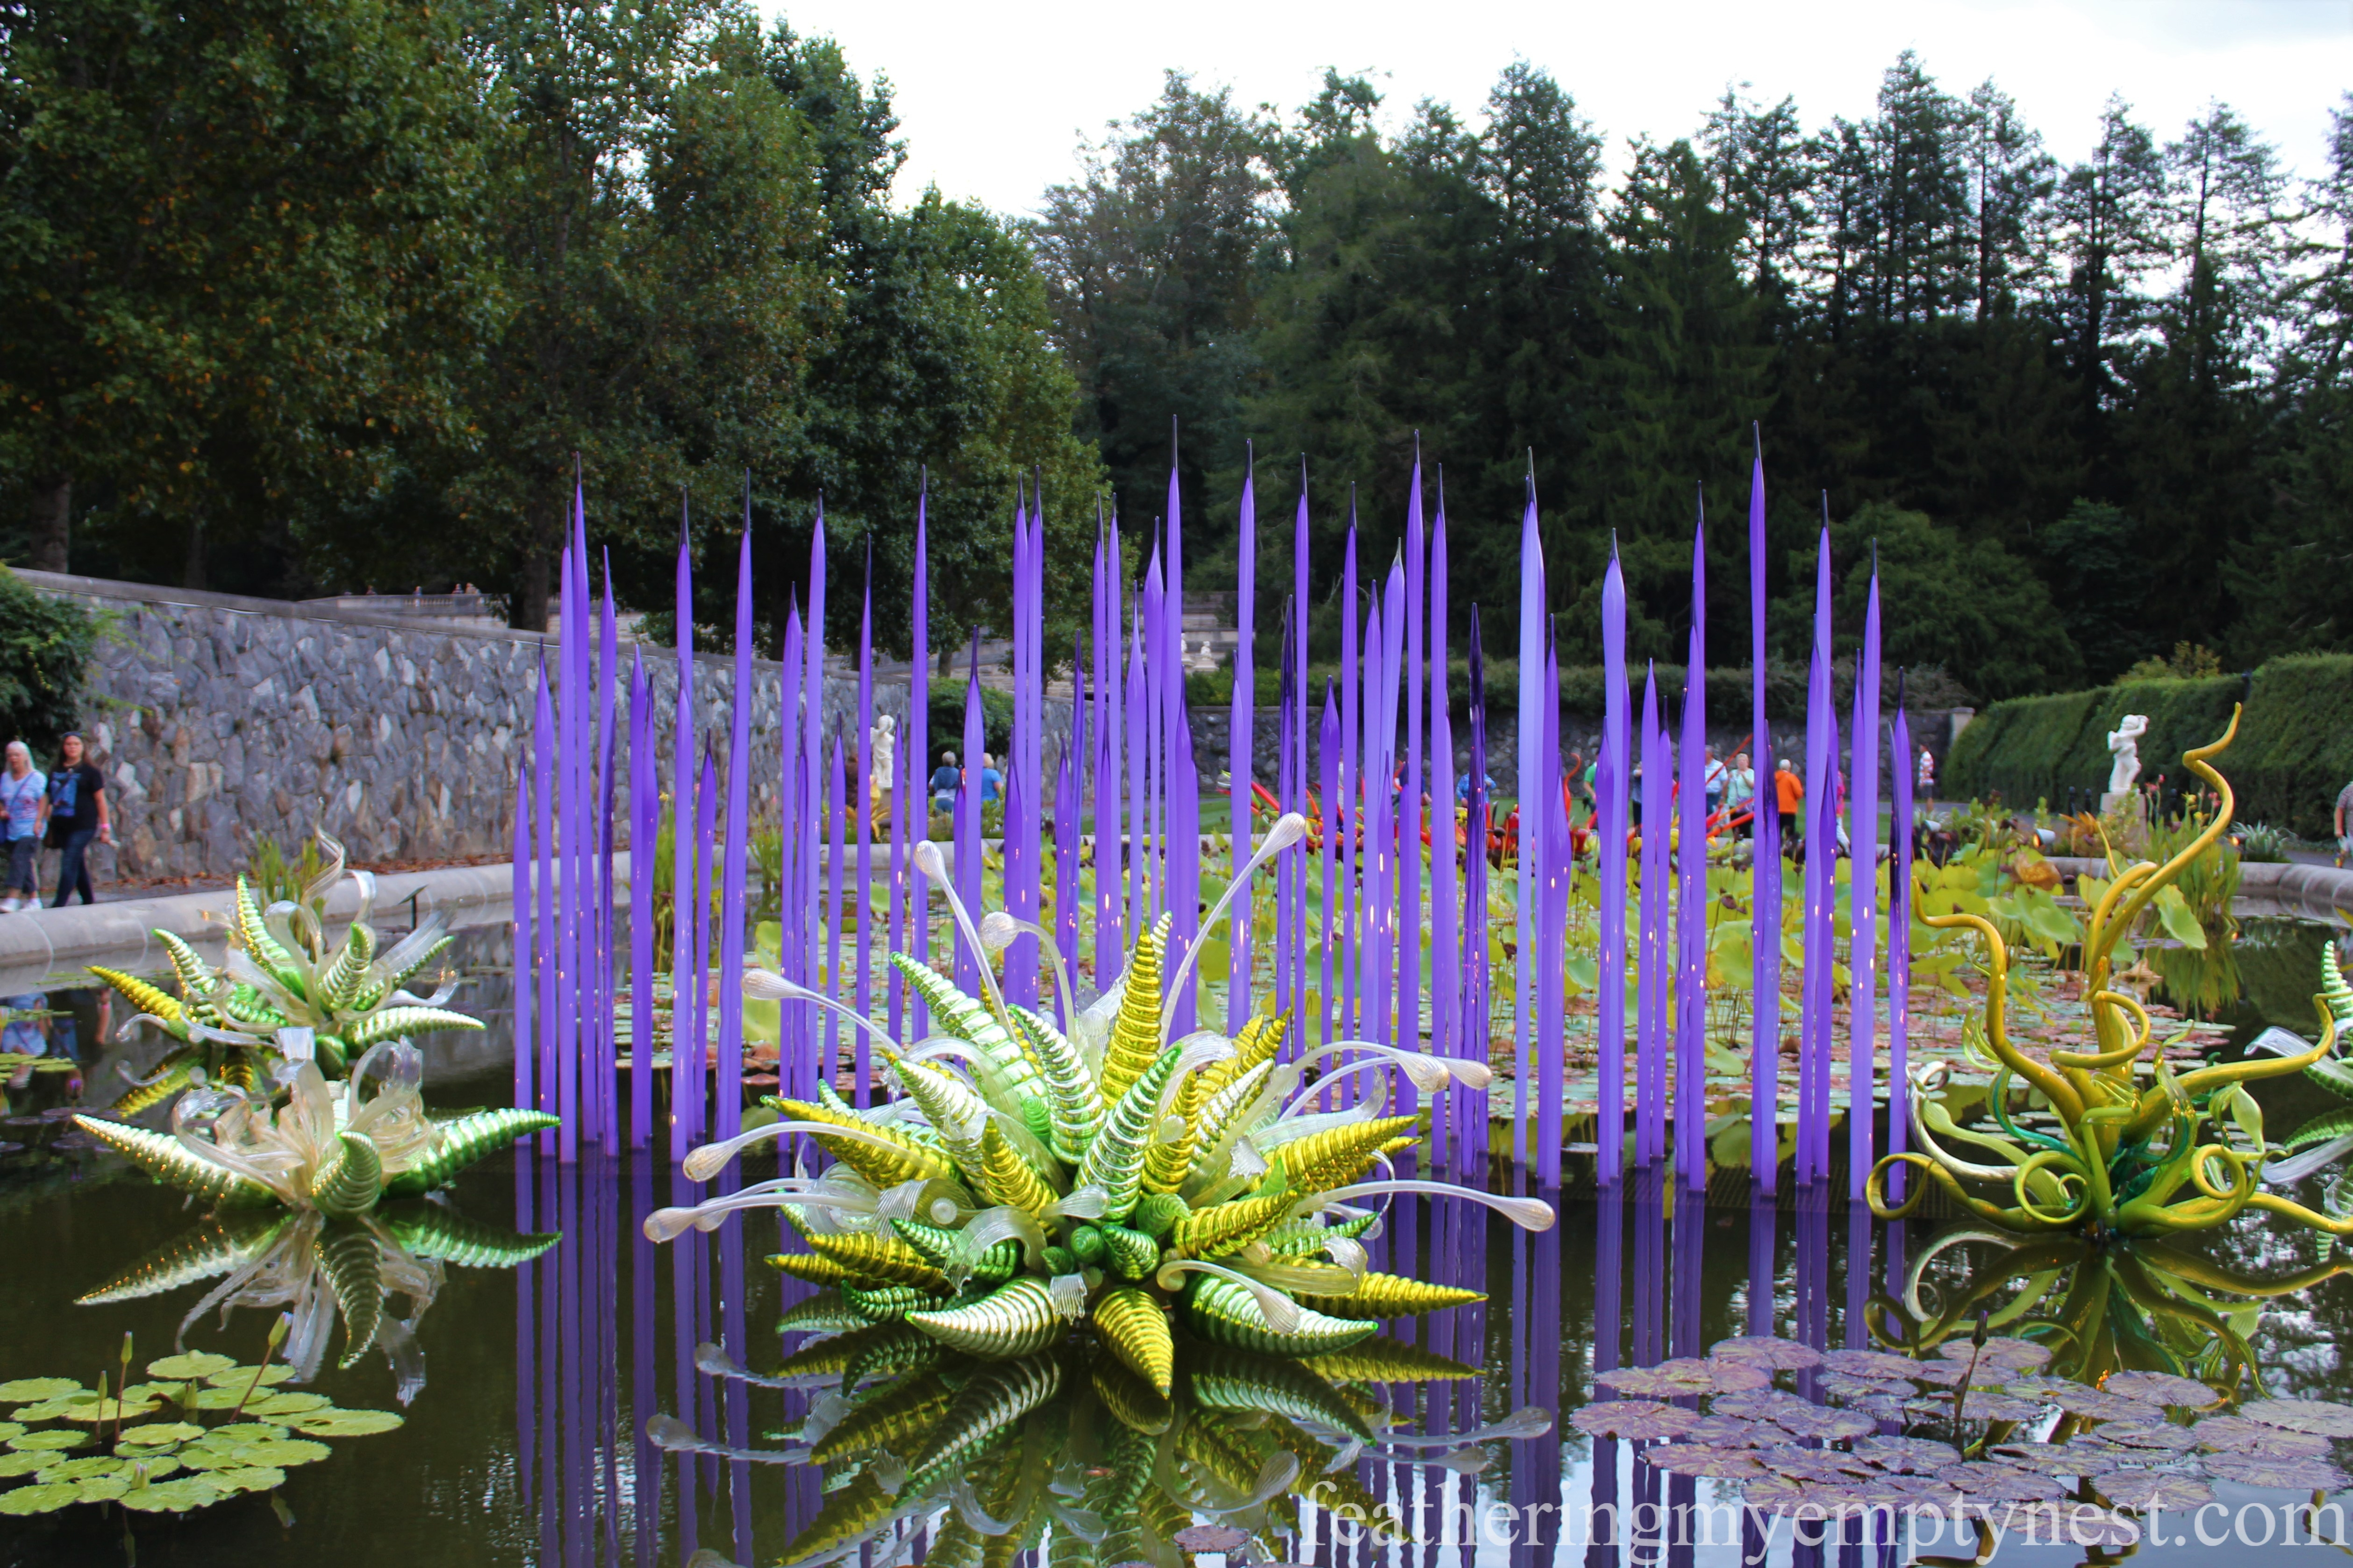 Chihuly glass sculpture Neodymium Reeds with Fiori Verdi in the Italian Garden Biltmore --Chihuly At Night At The Biltmore